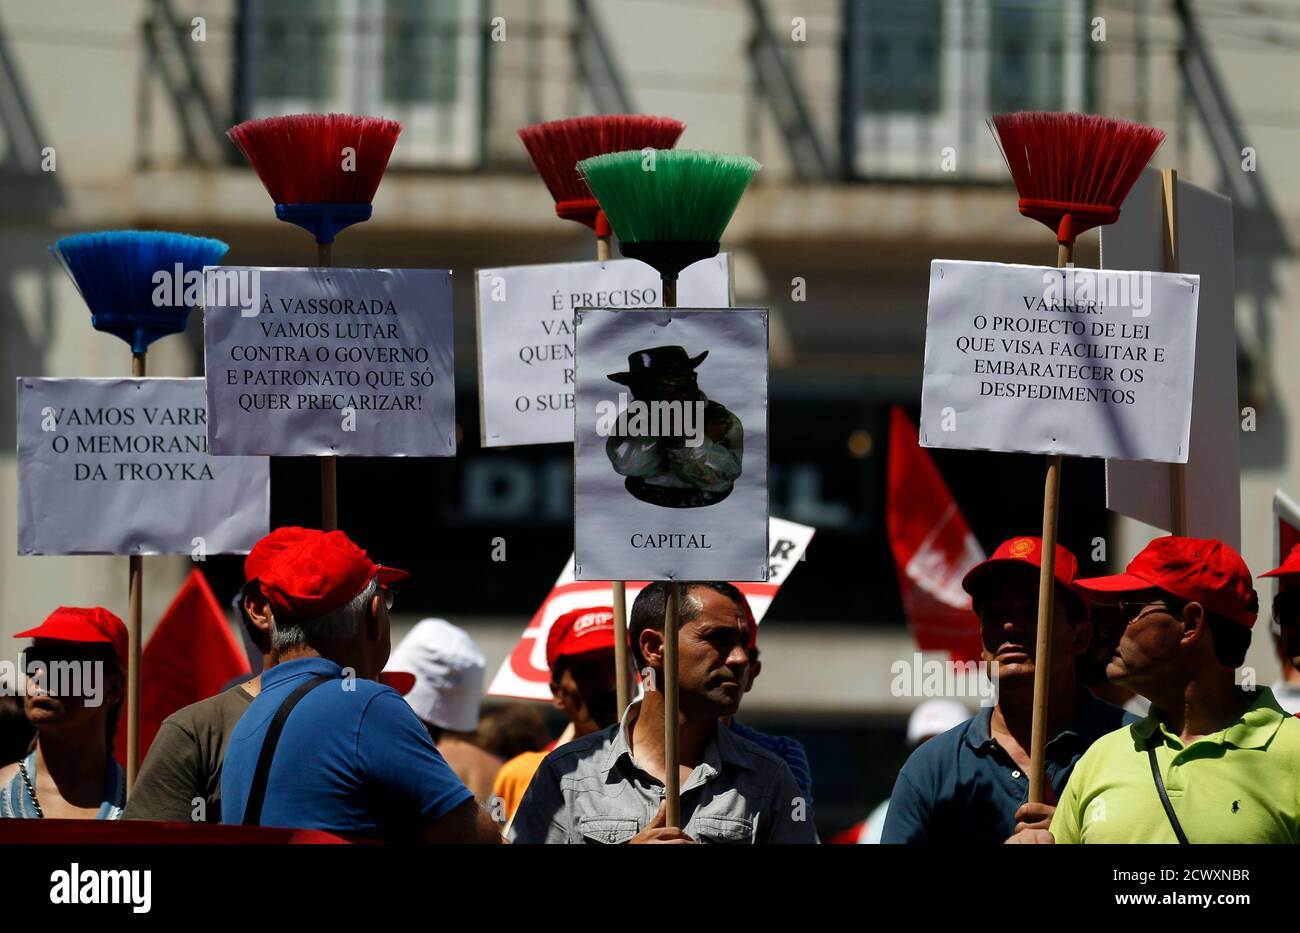 "Demonstrators hold up brooms with placards during a rally in Lisbon July 28, 2011. Union activists were protesting against changes in labor legislation. The placards read: ""We are going to fight against the government because it wants unstable labor!"" (2nd L) and ""Sweep! The law project that tries to cheapen the sackings"" (R). REUTERS/Rafael Marchante (PORTUGAL - Tags: BUSINESS POLITICS CIVIL UNREST IMAGES OF THE DAY) Stock Photo"